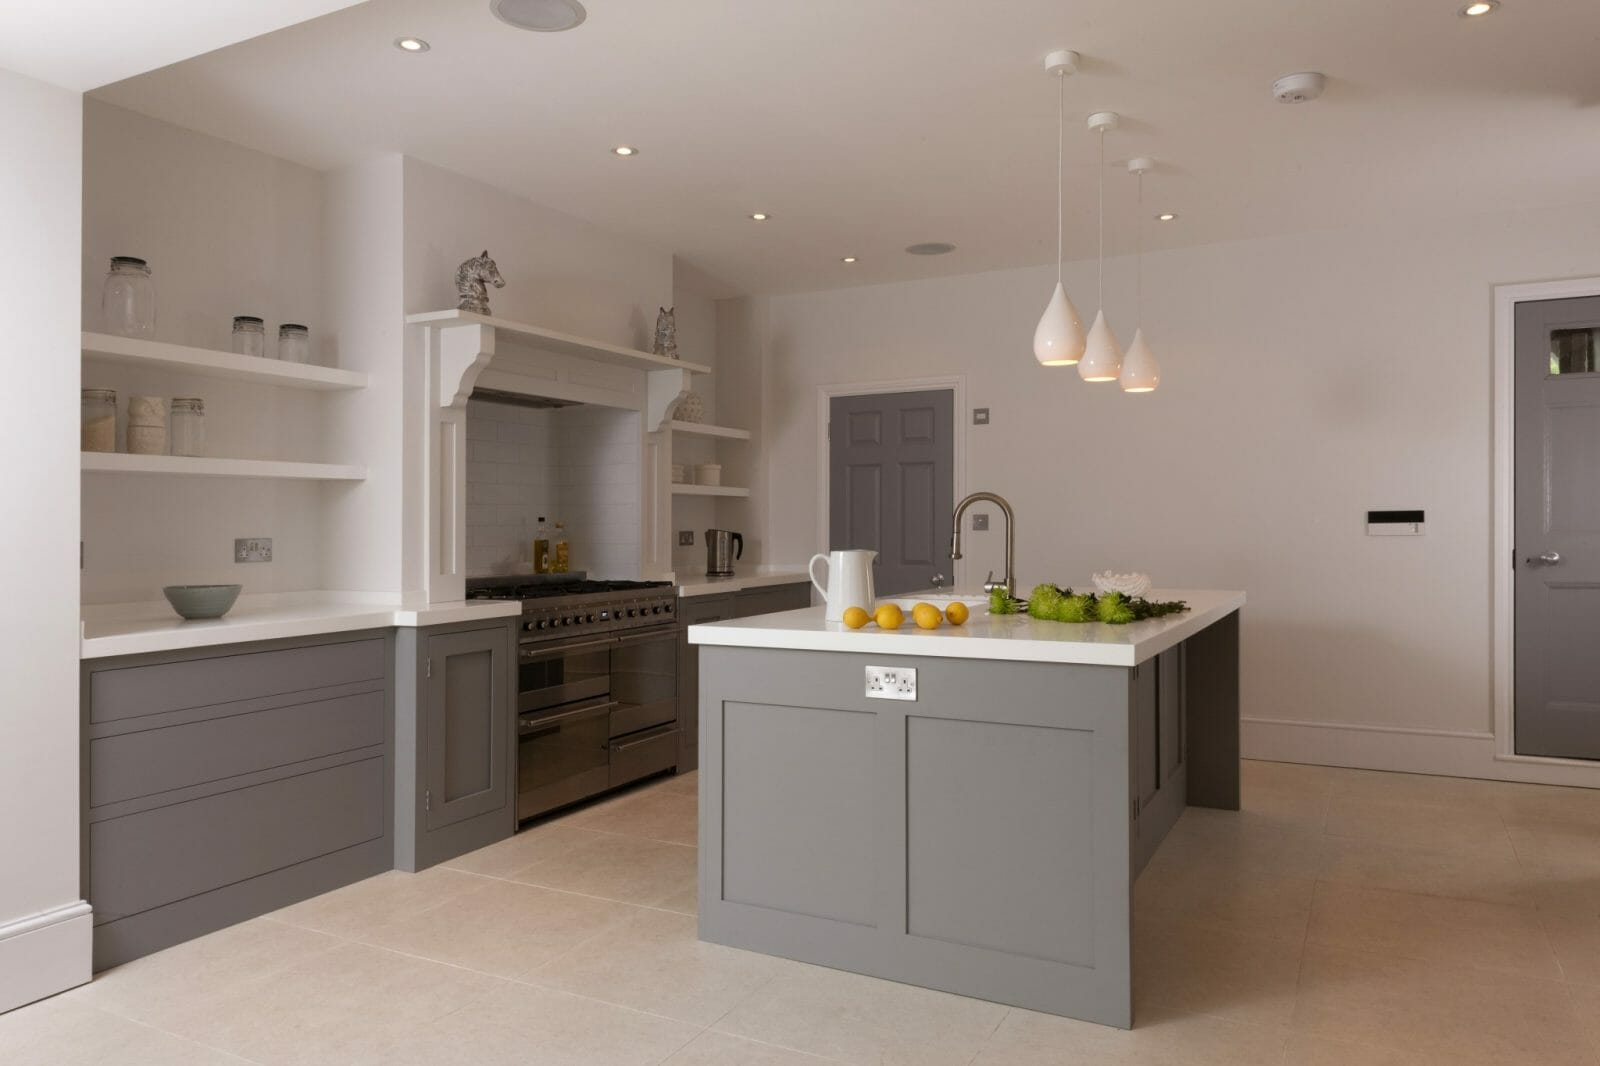 Battersea London Handleless Shaker Kitchen Higham Furniture